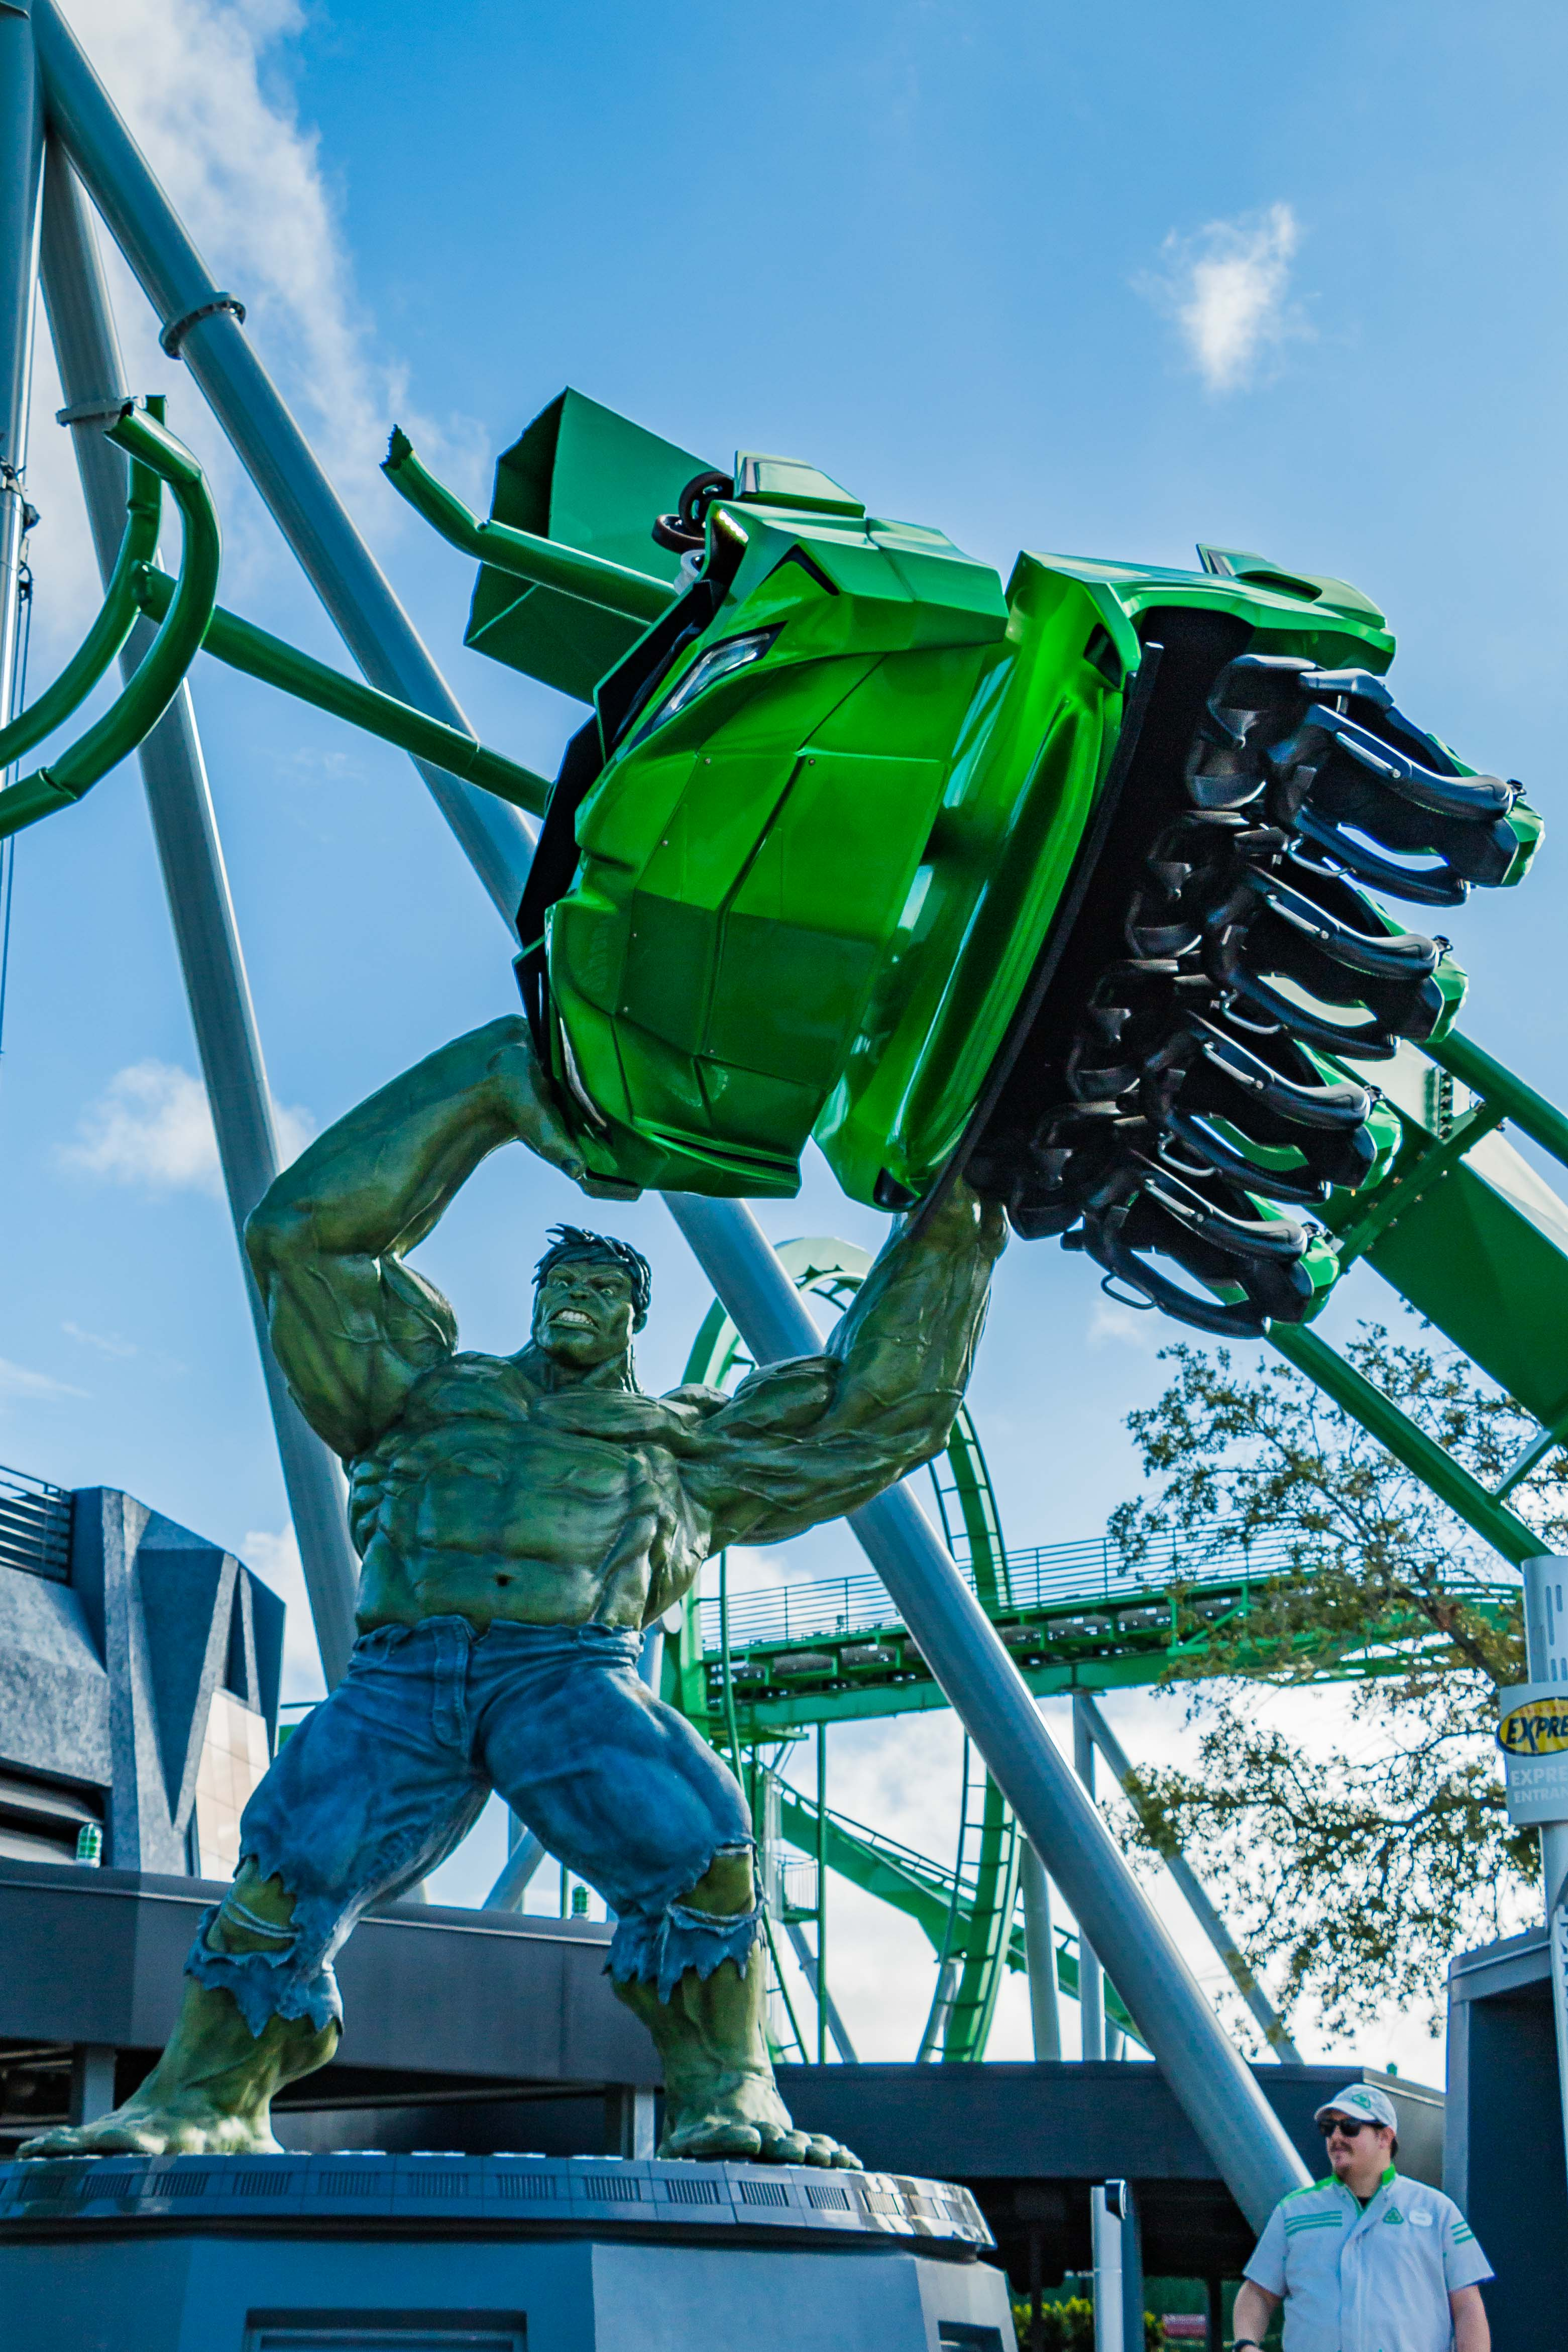 Montanha Russa do Hulk no Island of Adventures